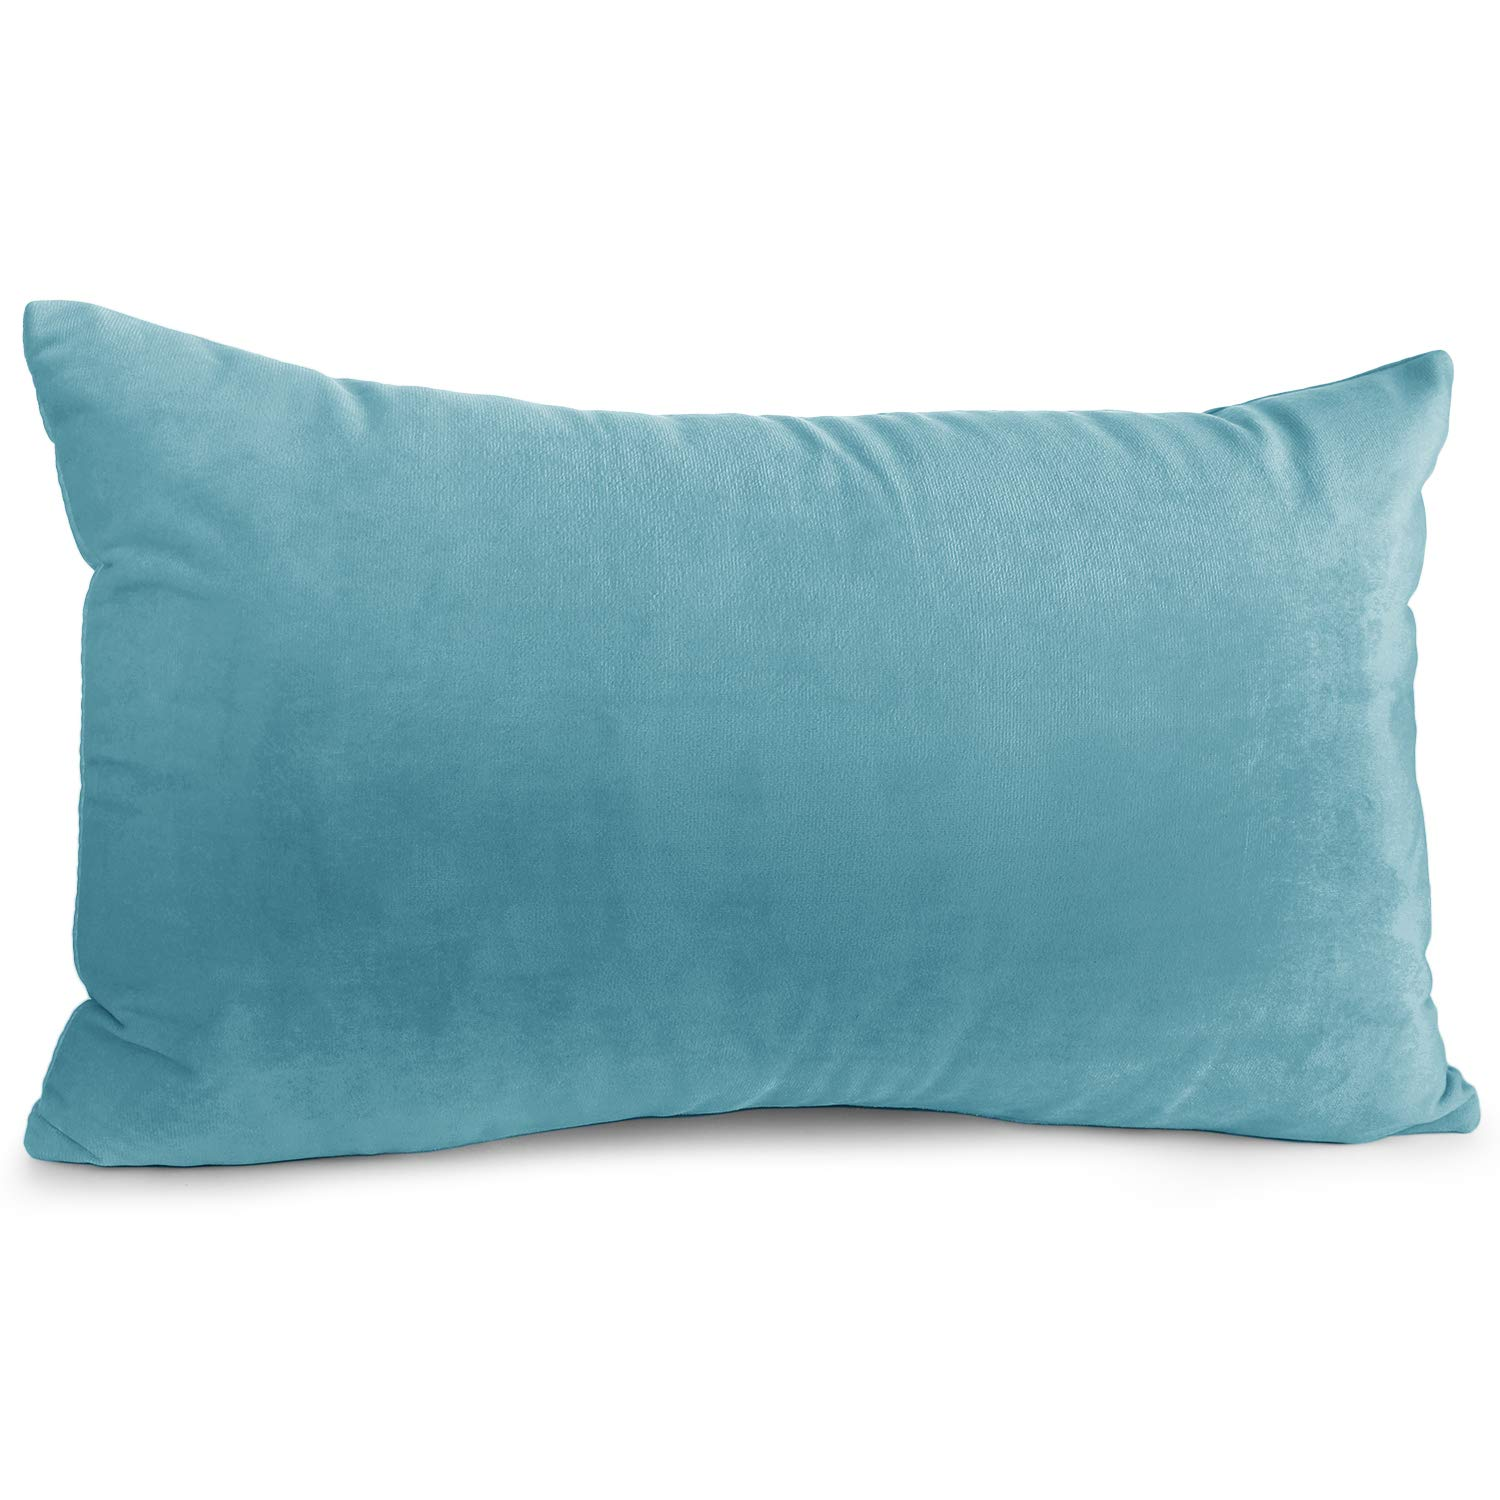 """Nestl Bedding Throw Pillow Cover 12"""" x 20"""" Soft Square Decorative Throw Pillow Covers Cozy Velvet Cushion Case for Sofa Couch Bedroom - Beach Blue"""